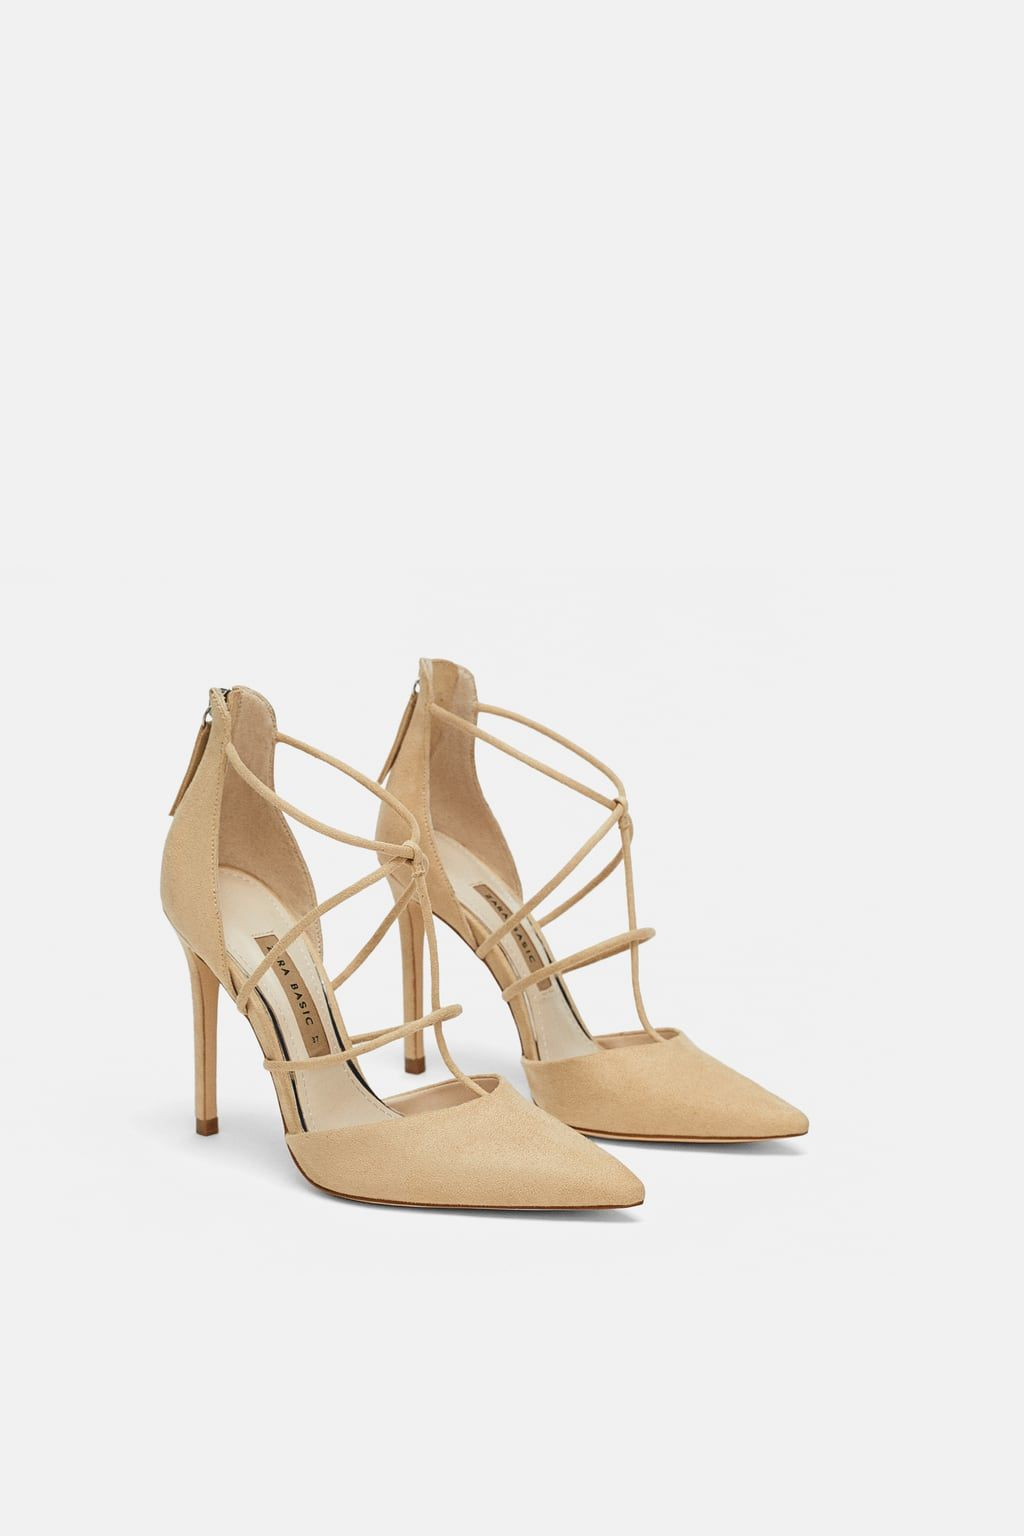 4099ca0d0cfc Image 1 of STRAPPY HEELED SHOES from Zara Brown Beige